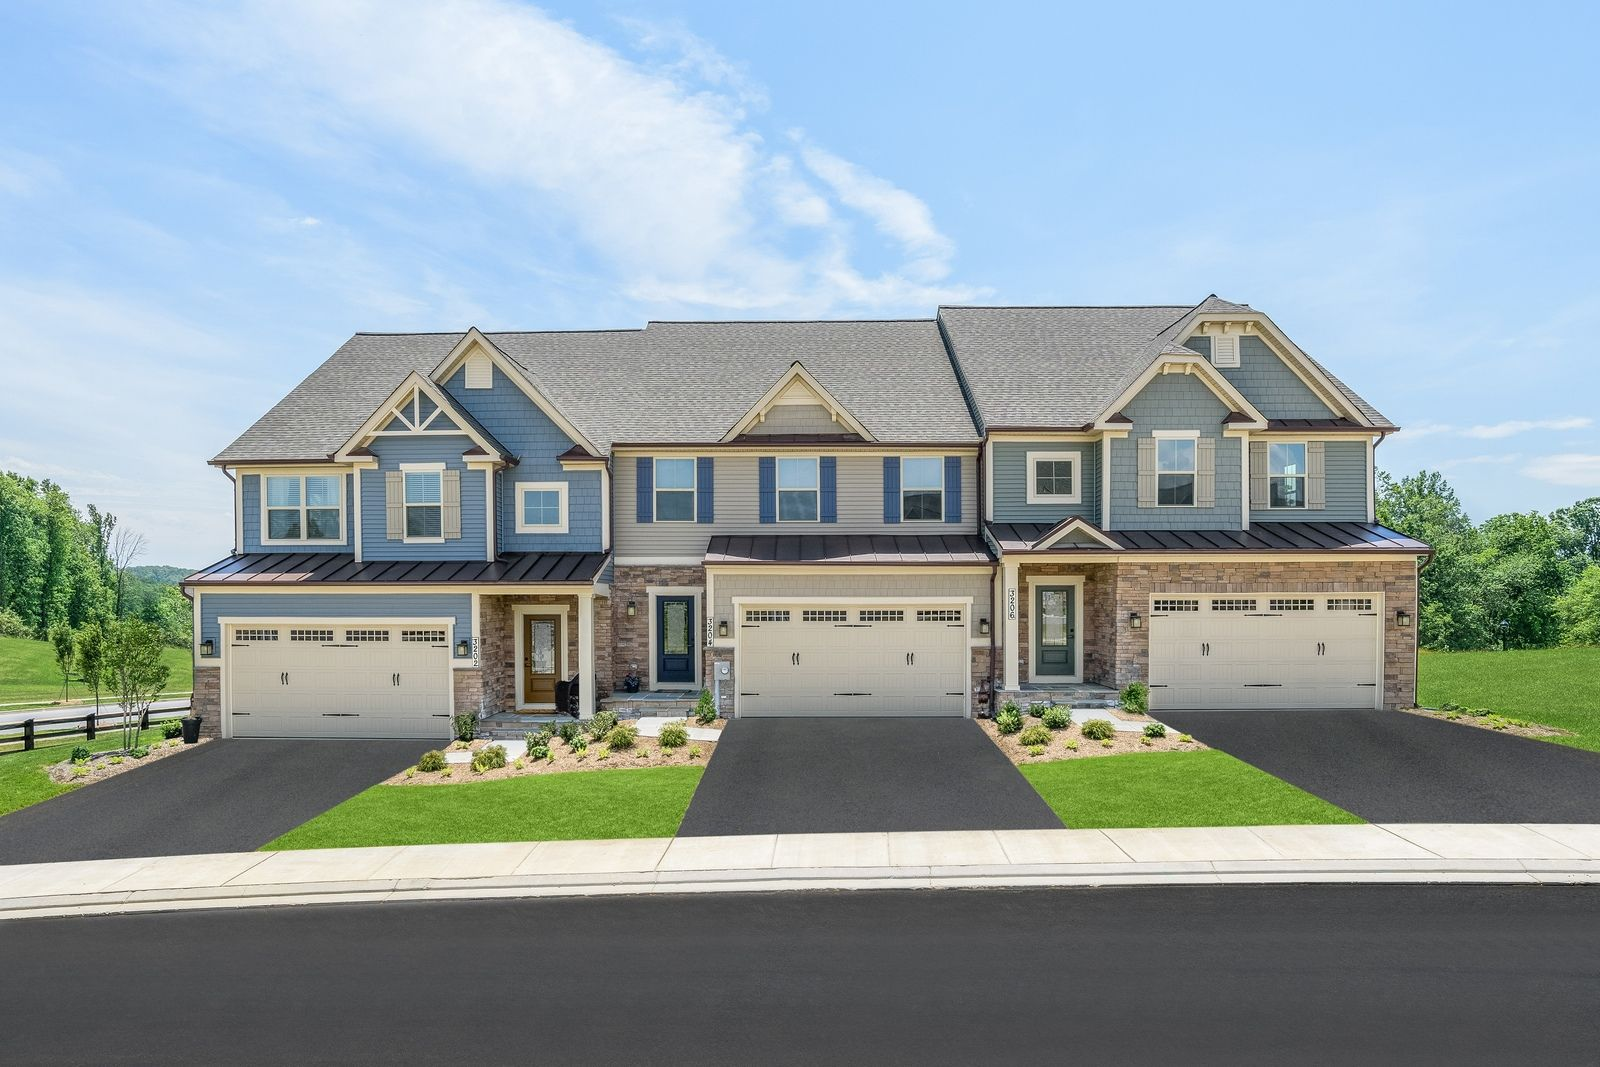 JOIN THE VIP LIST TO GET THE LATEST UPDATES:Coming SoonMay 2021. Villas with Basements featuring 1st Floor Owner's Suites. Only 1 mile to Downtown Frederick, 2 minutes to I-70 & I-270. From the upper $400s.Join the VIP List today!